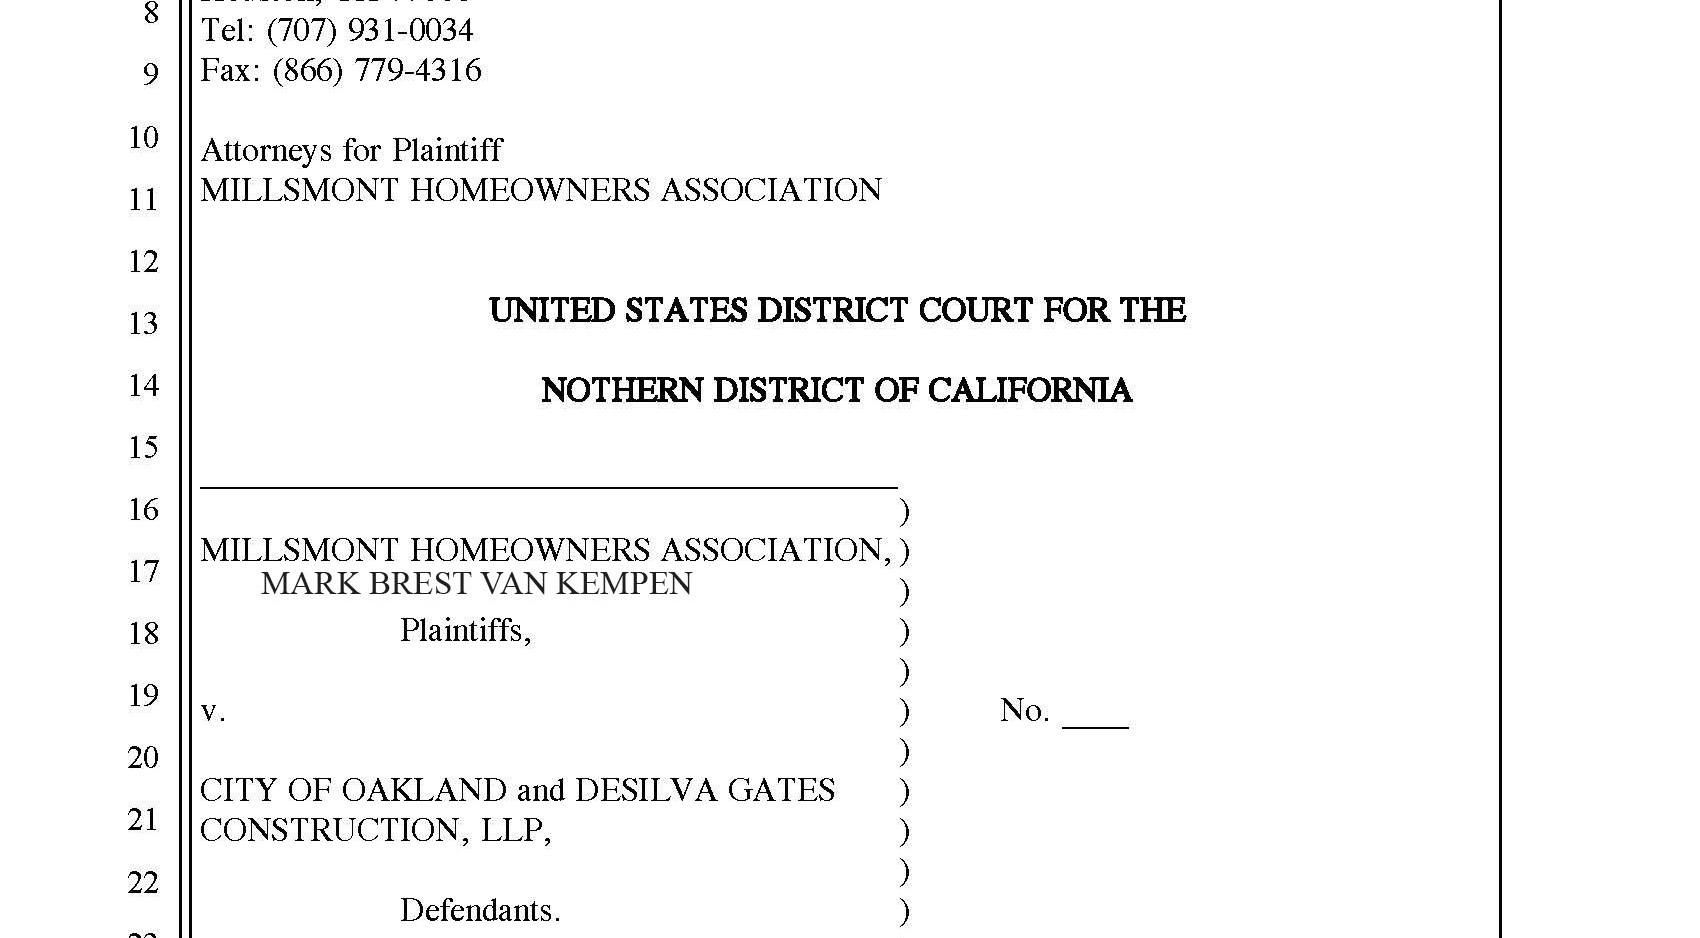 Federal lawsuit against the developer and the City of Oakland for clean water violations.